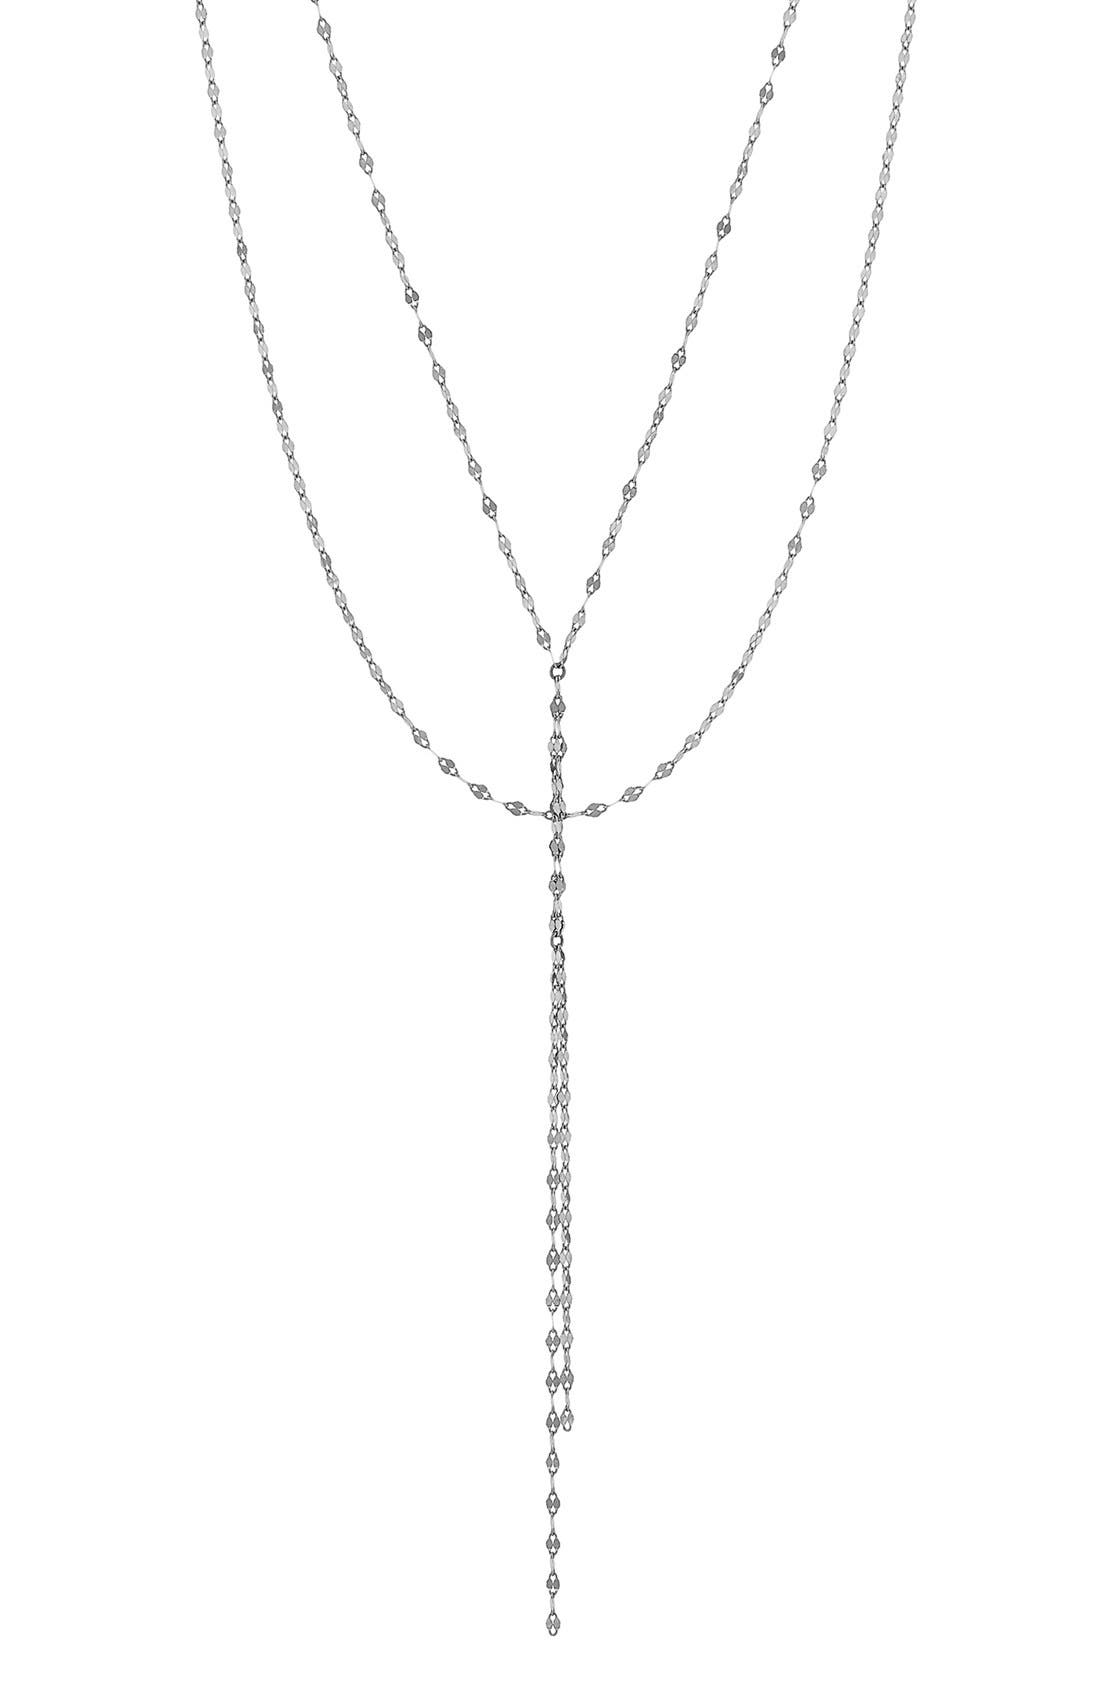 'Blake' Lariat Necklace,                             Main thumbnail 1, color,                             WHITE GOLD